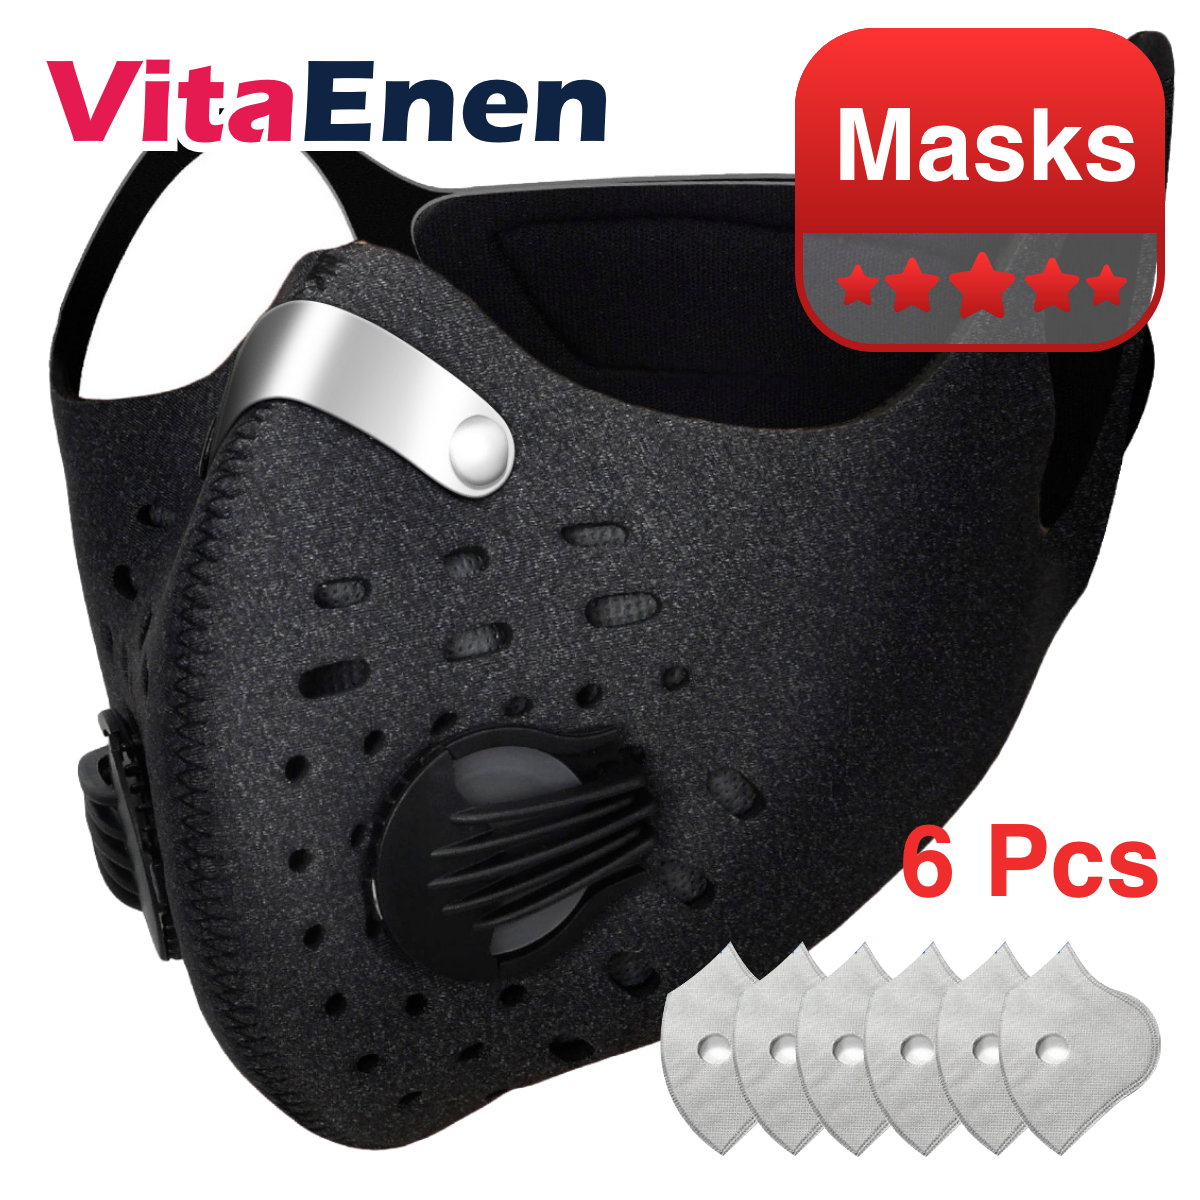 VITAENEN n stock 6Pcs Disposable, 5 Layers Filter,6pcs Filter Activated Carbon Breathing Filters,Haze Valve Anti-dust Breathing Activated Carbon Filter Respirator Mouth-Muffle,Civil, Protection, Safety,Replaceable